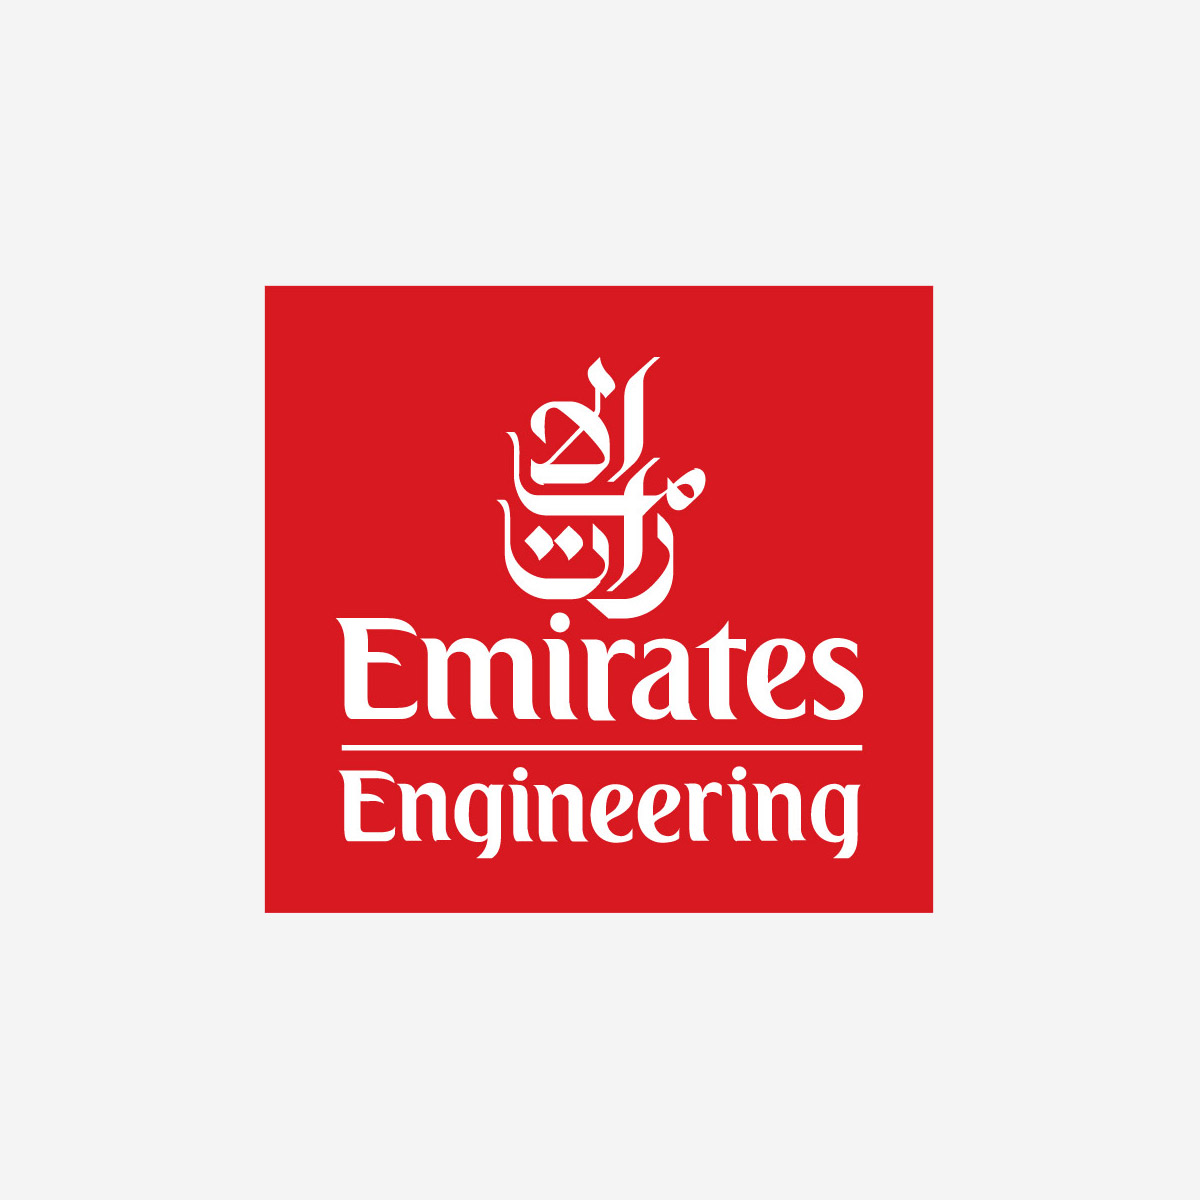 Emirates Engineering